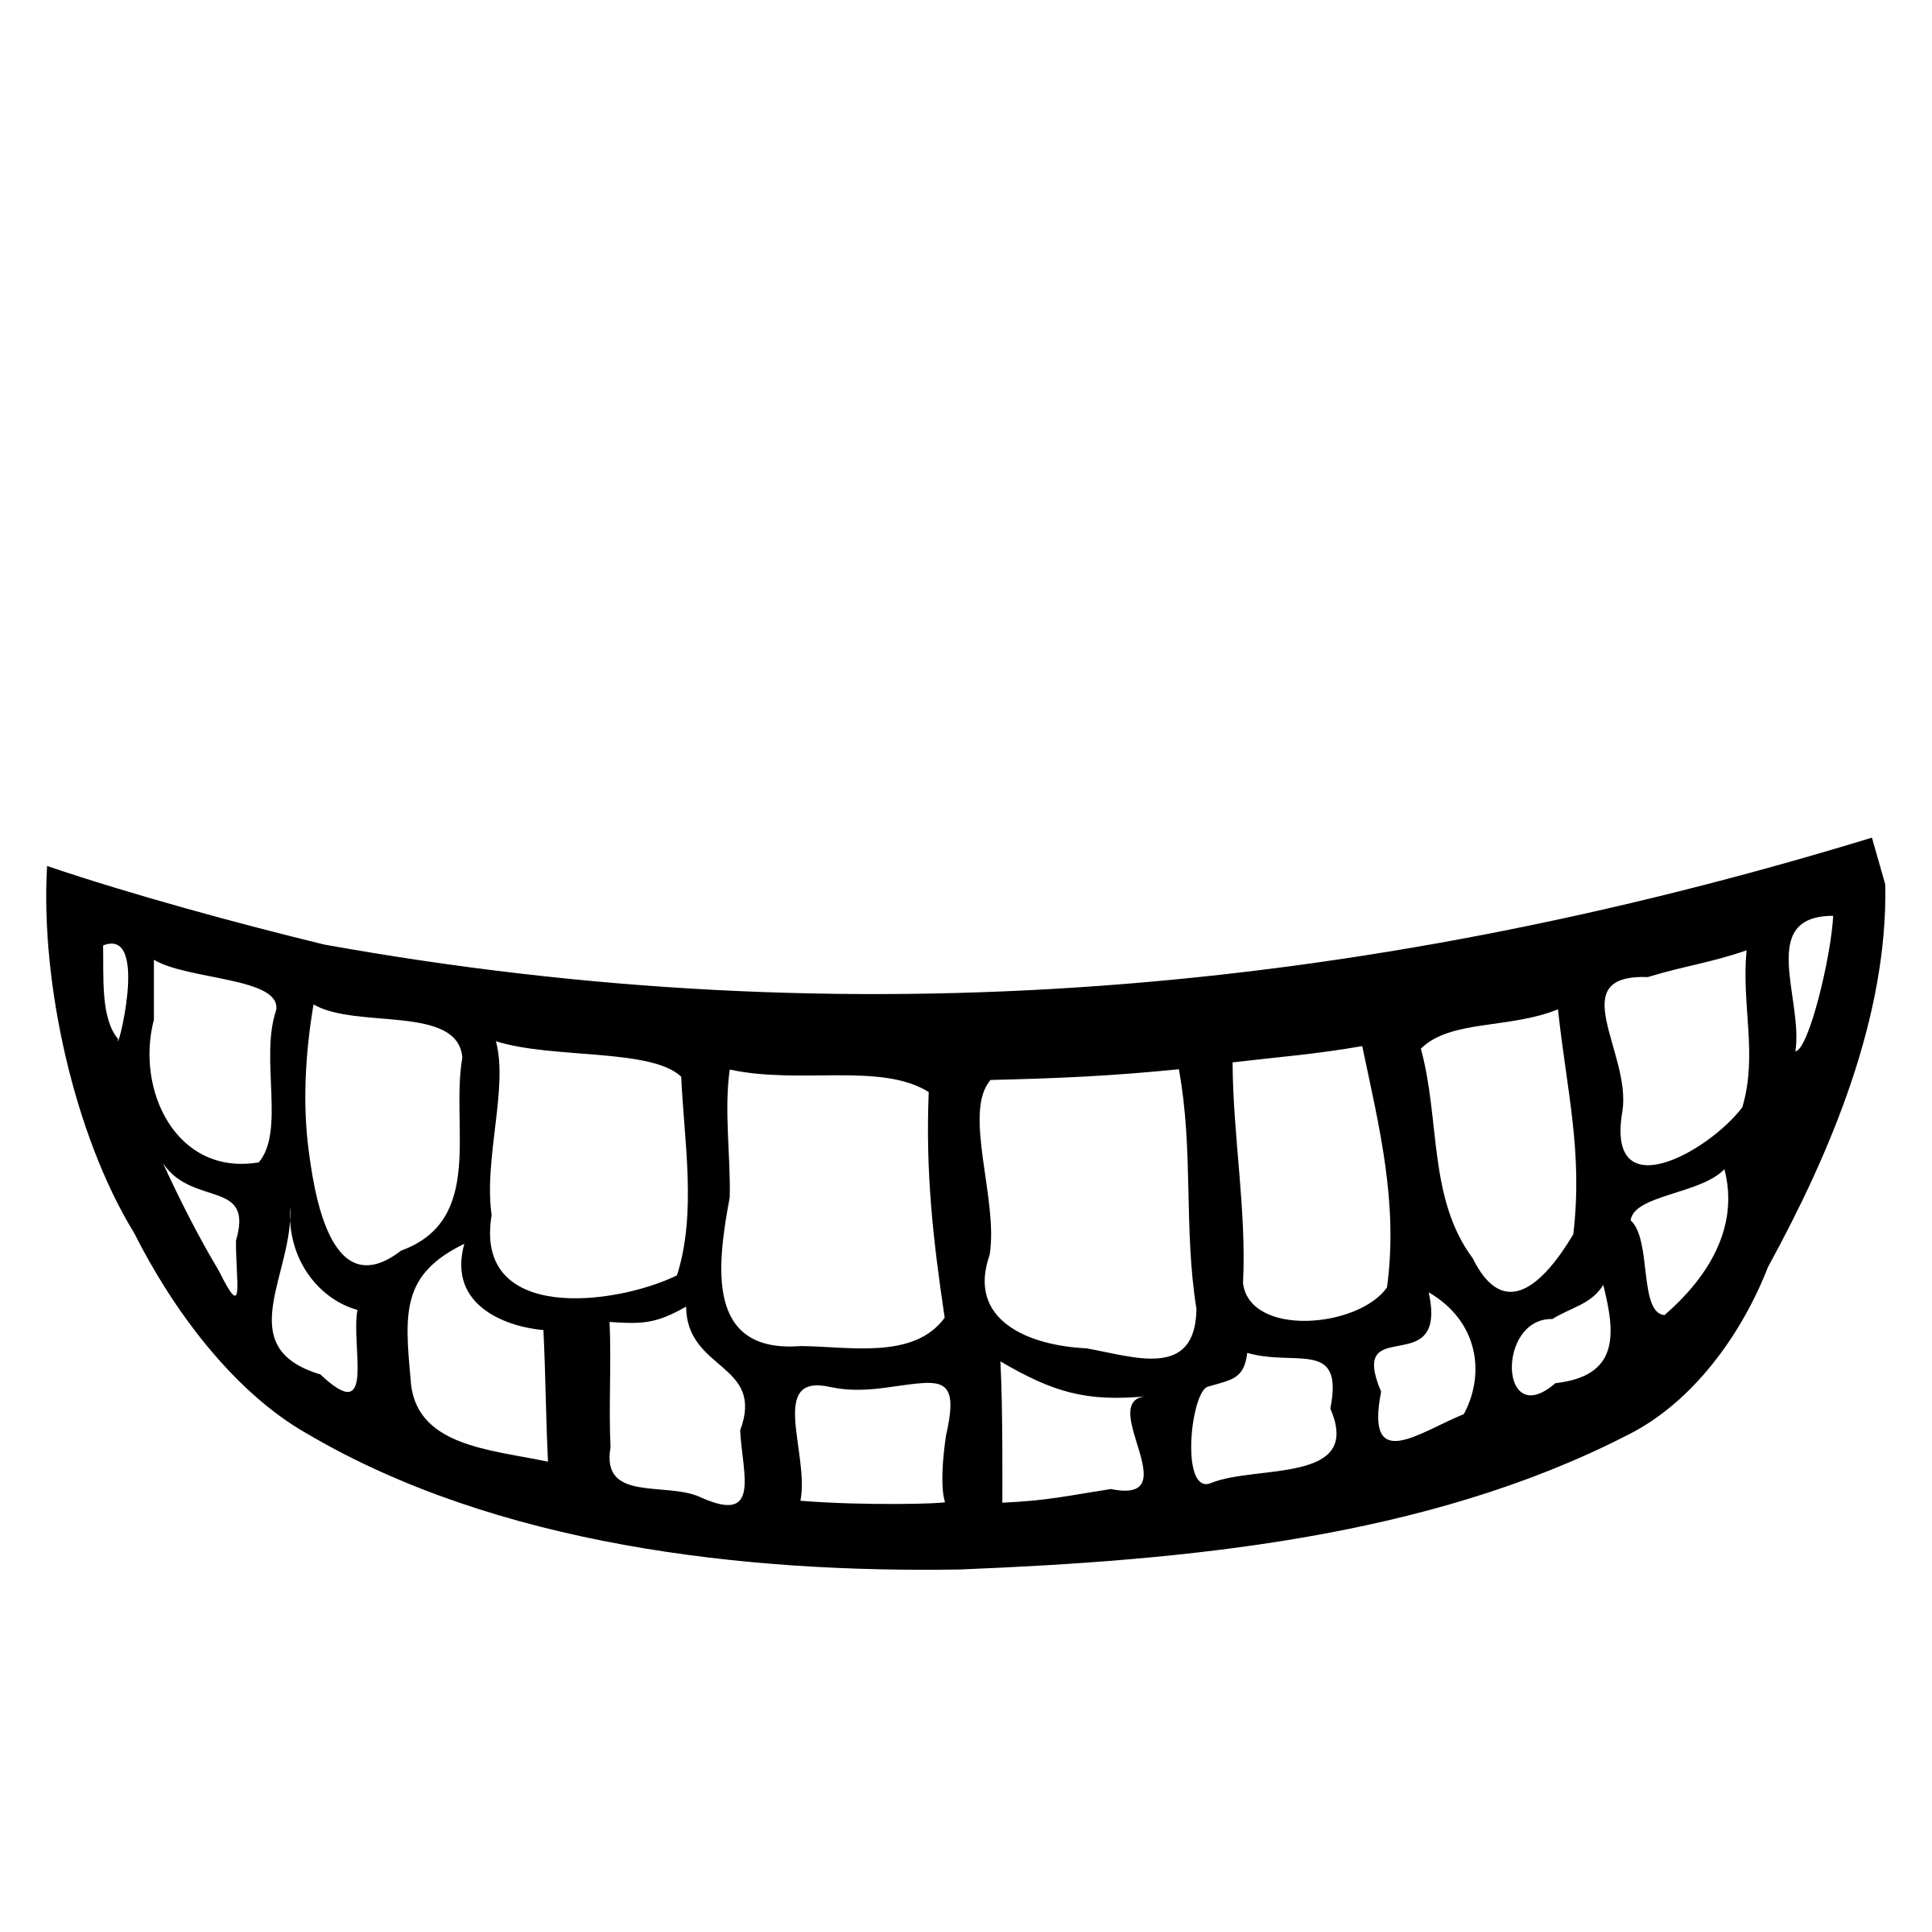 With teeth icons png. Mouth svg crazy image black and white stock